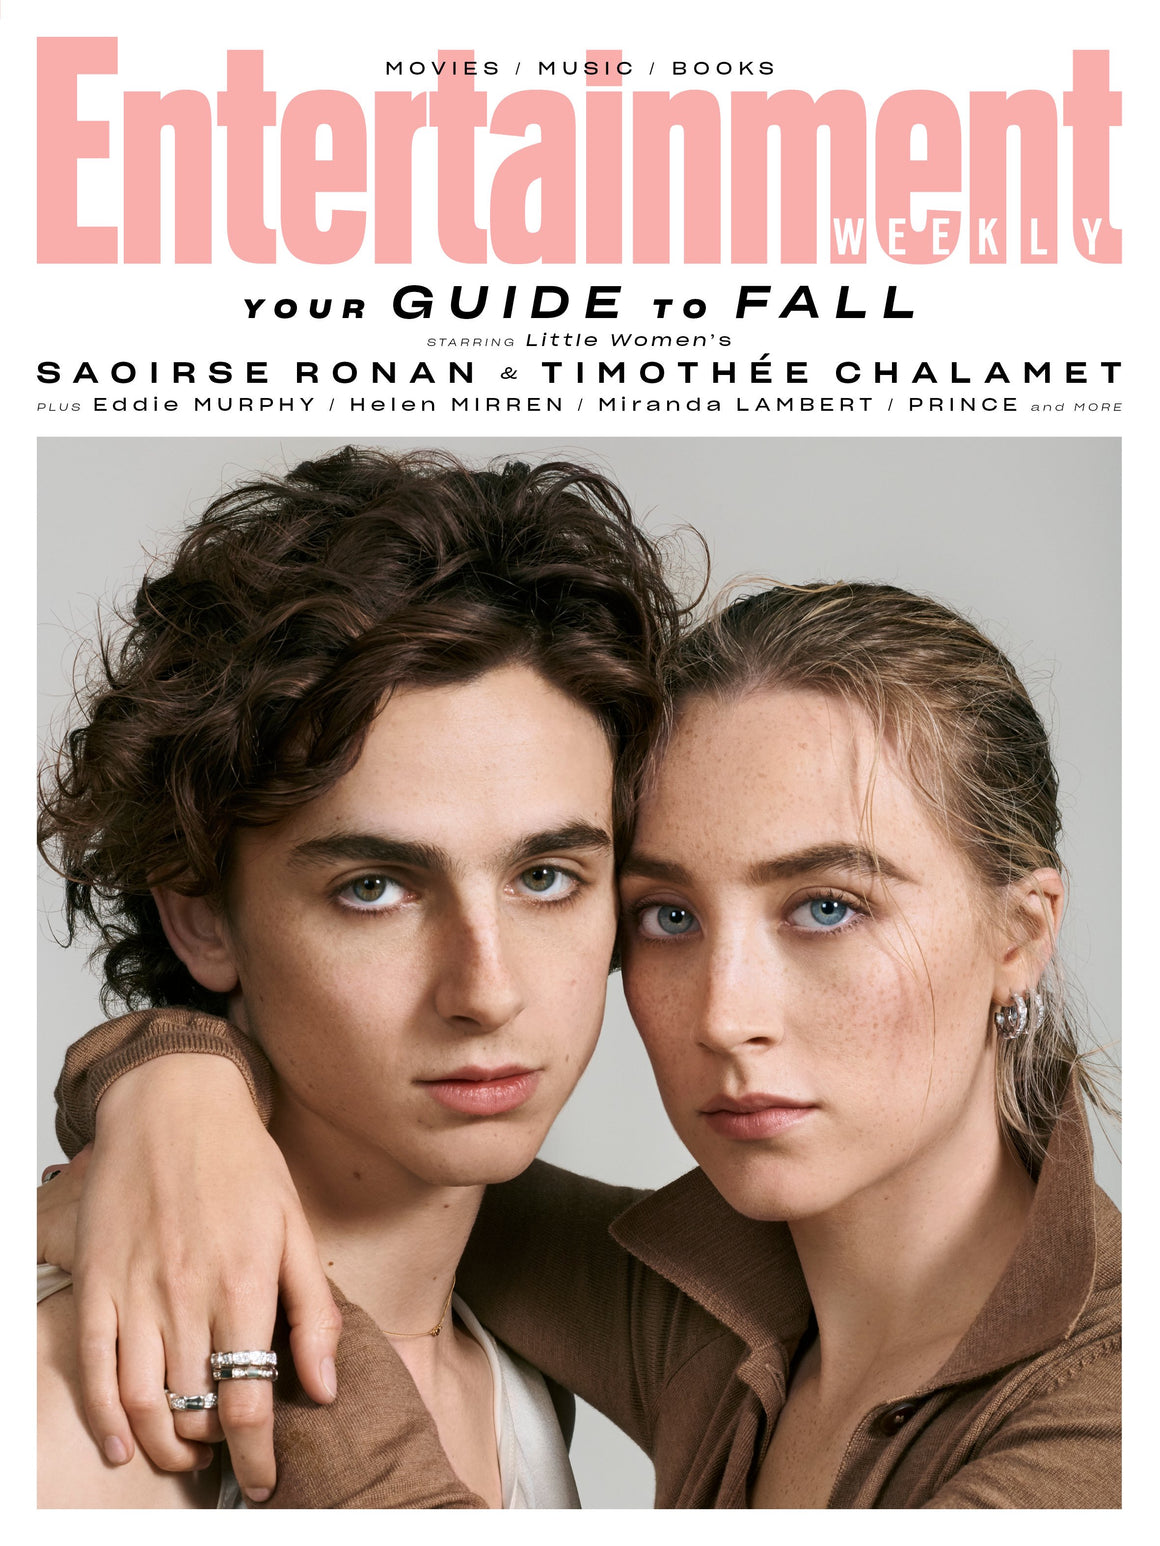 US ENTERTAINMENT WEEKLY MAGAZINE NOVEMBER 2019: TIMOTHEE CHALAMET LITTLE WOMEN